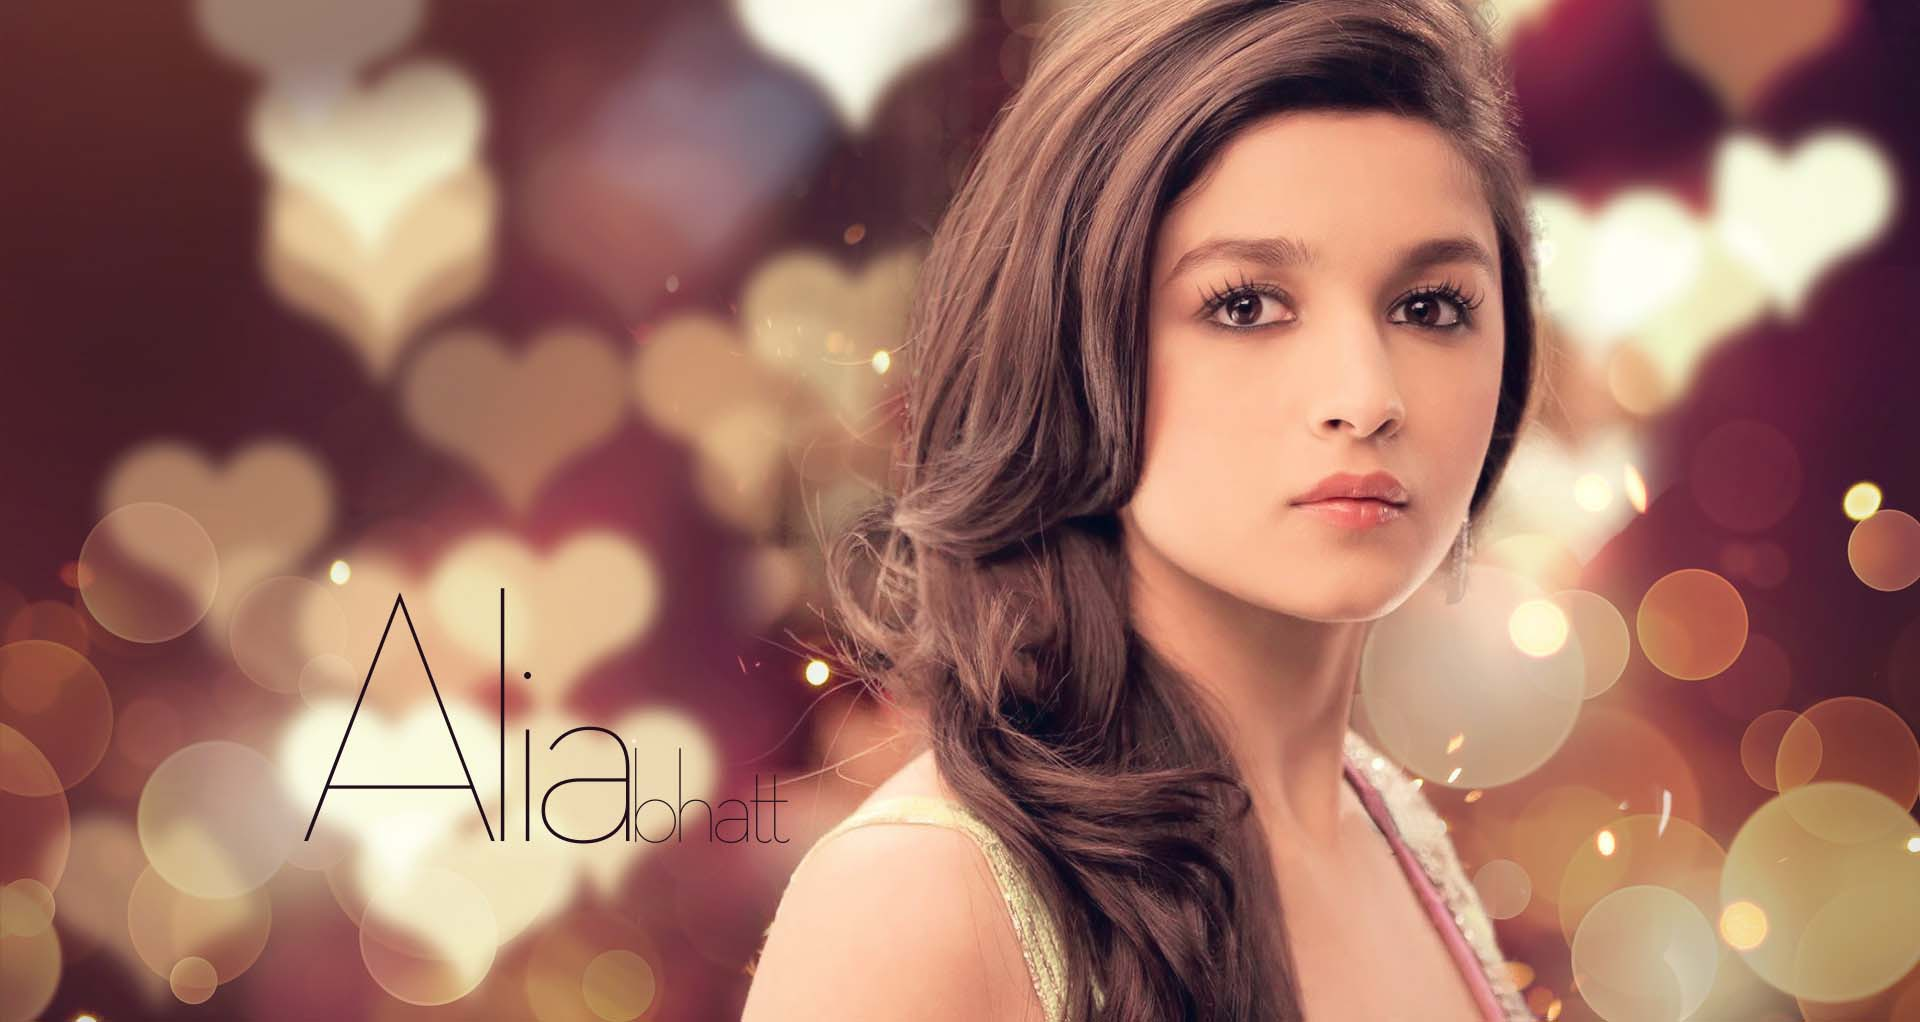 Download Alia Bhatt Photoshoot 2560x1024 Resolution, Full HD Wallpapers